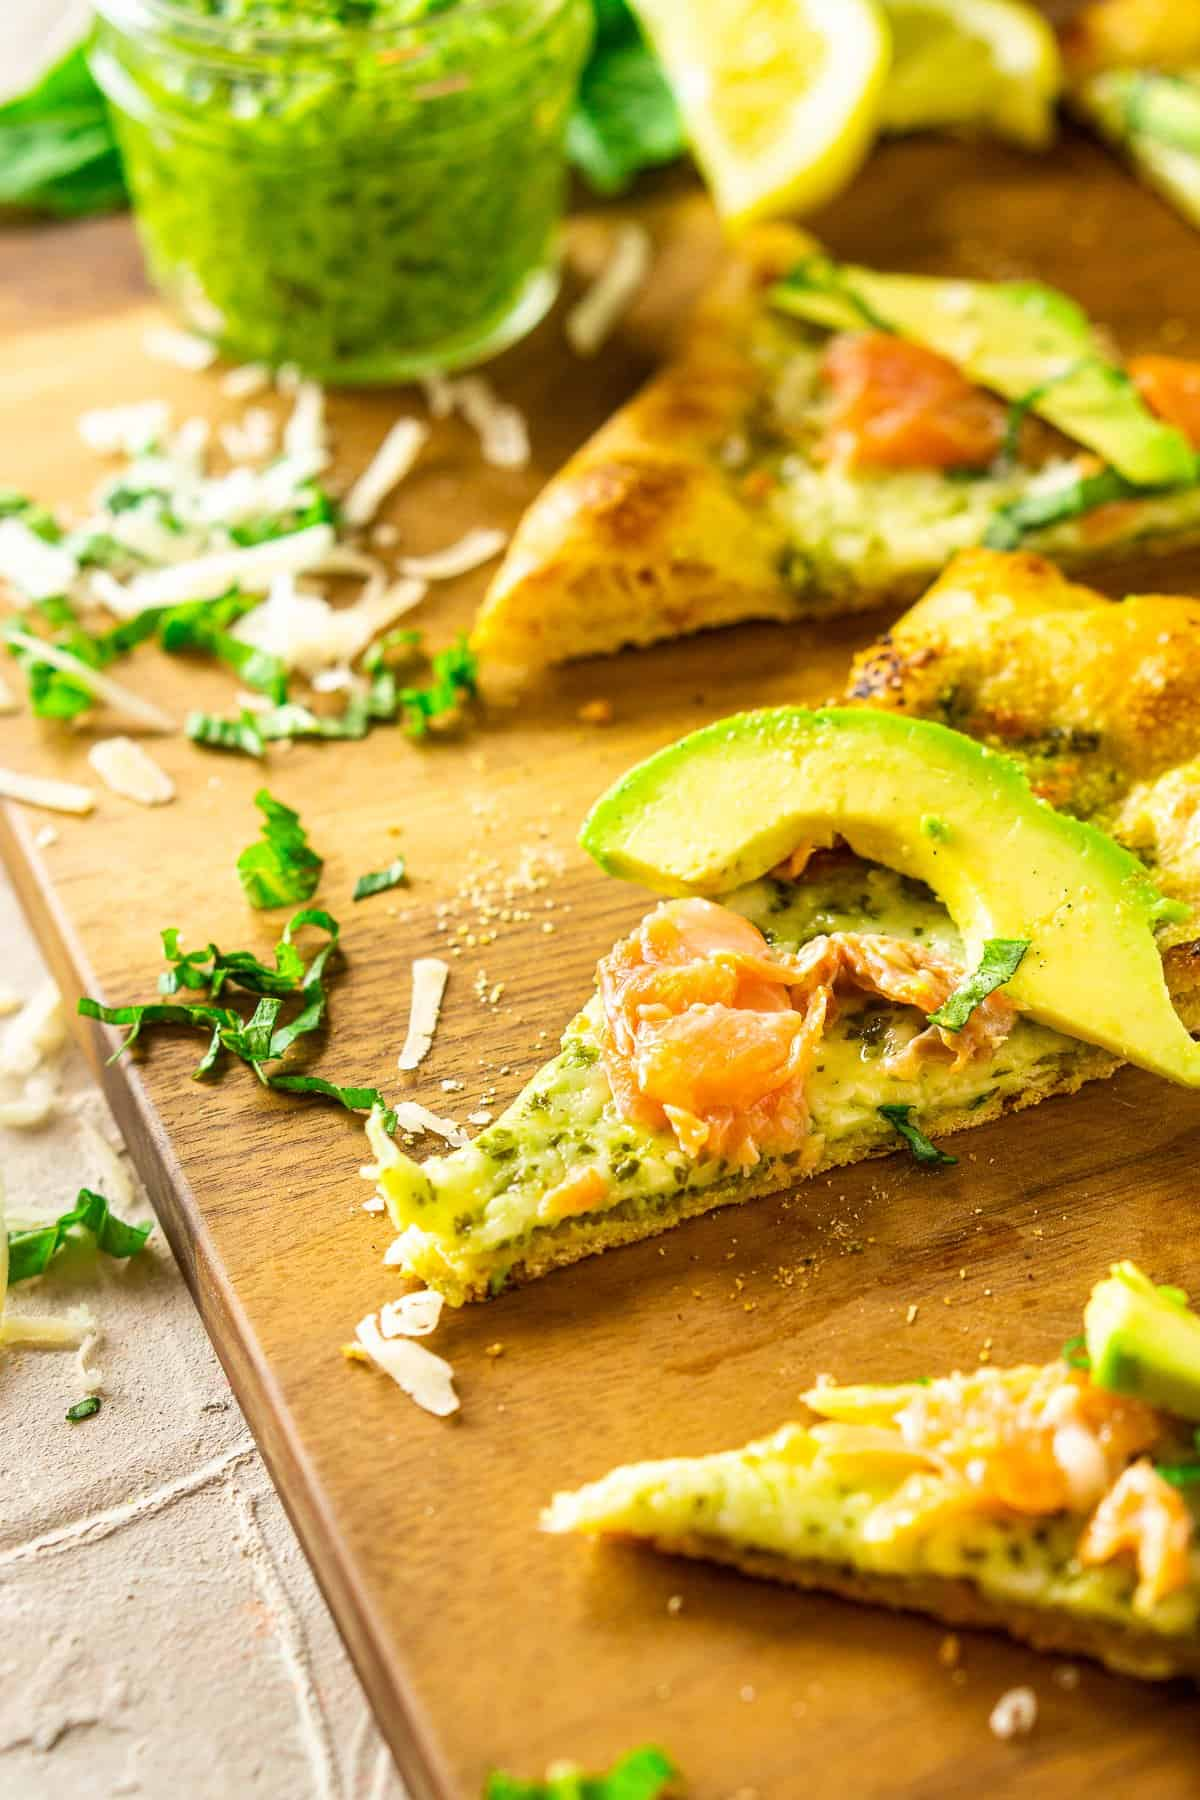 A slice of the smoked salmon and avocado pizza on the wooden cutting board with other slices around it.